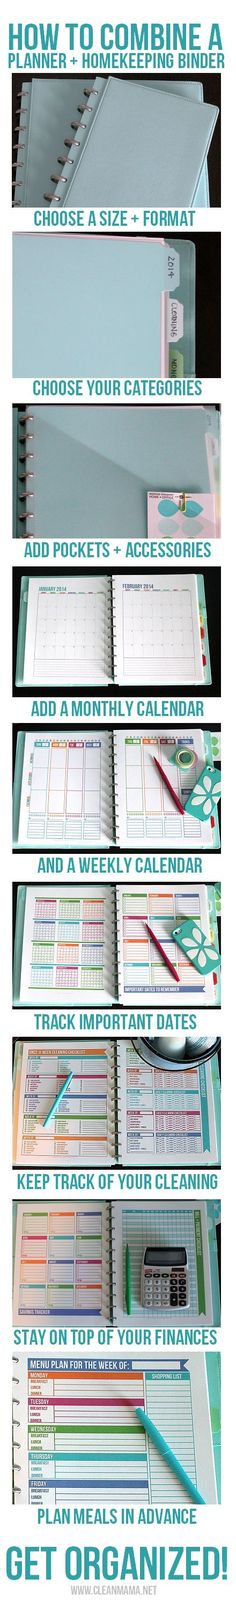 Keep it SIMPLE!  How to Combine a Planner + Homekeeping Binder via Clean Mama